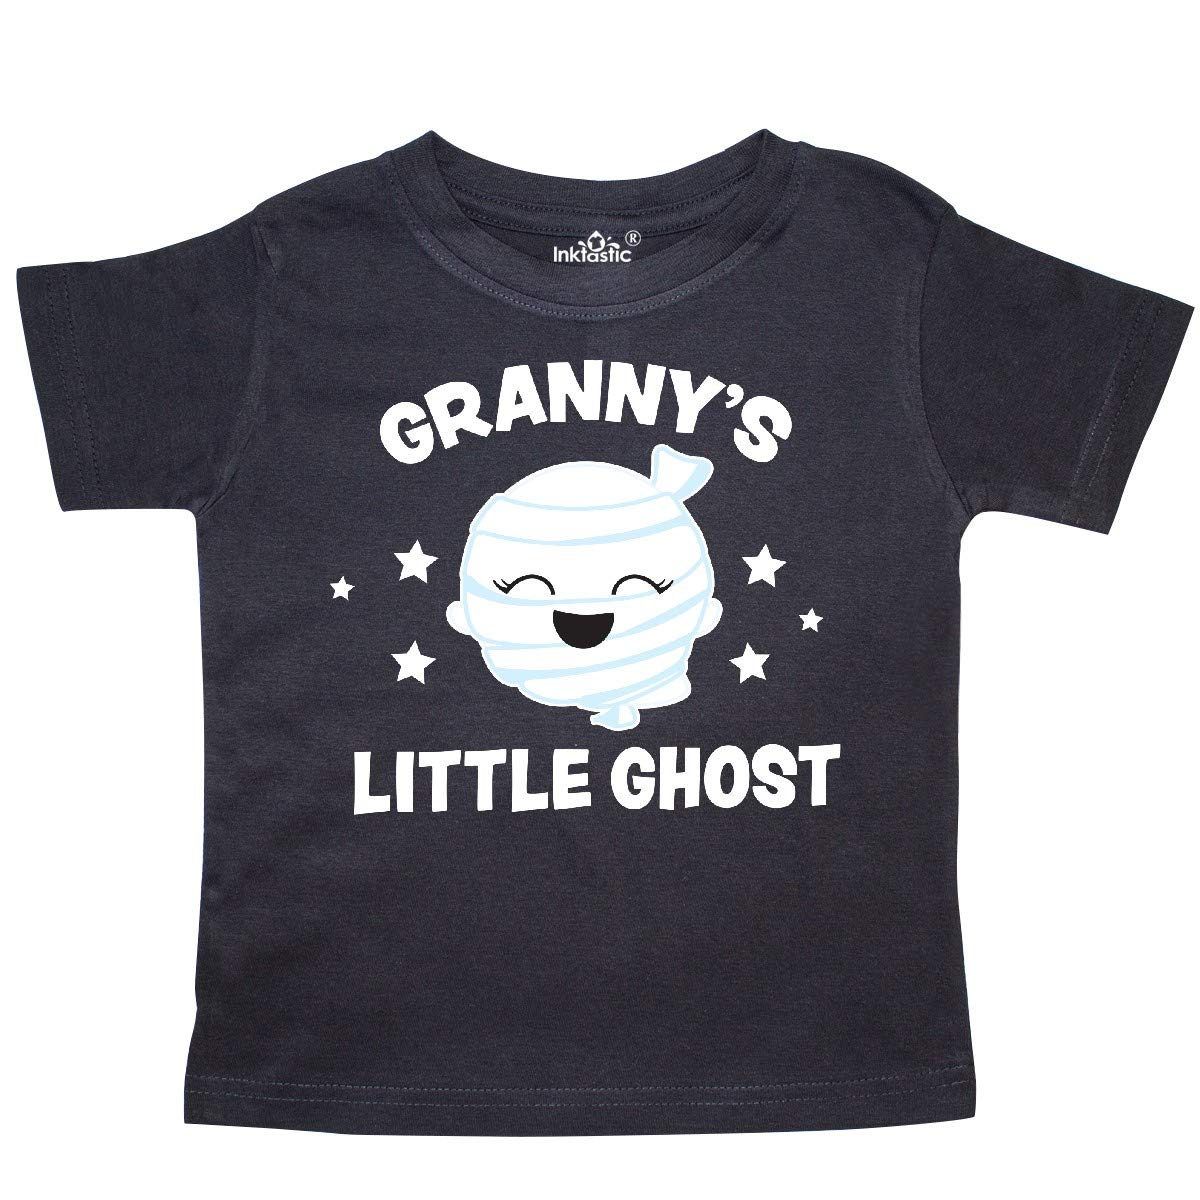 inktastic Cute Grannys Little Ghost with Stars Toddler T-Shirt